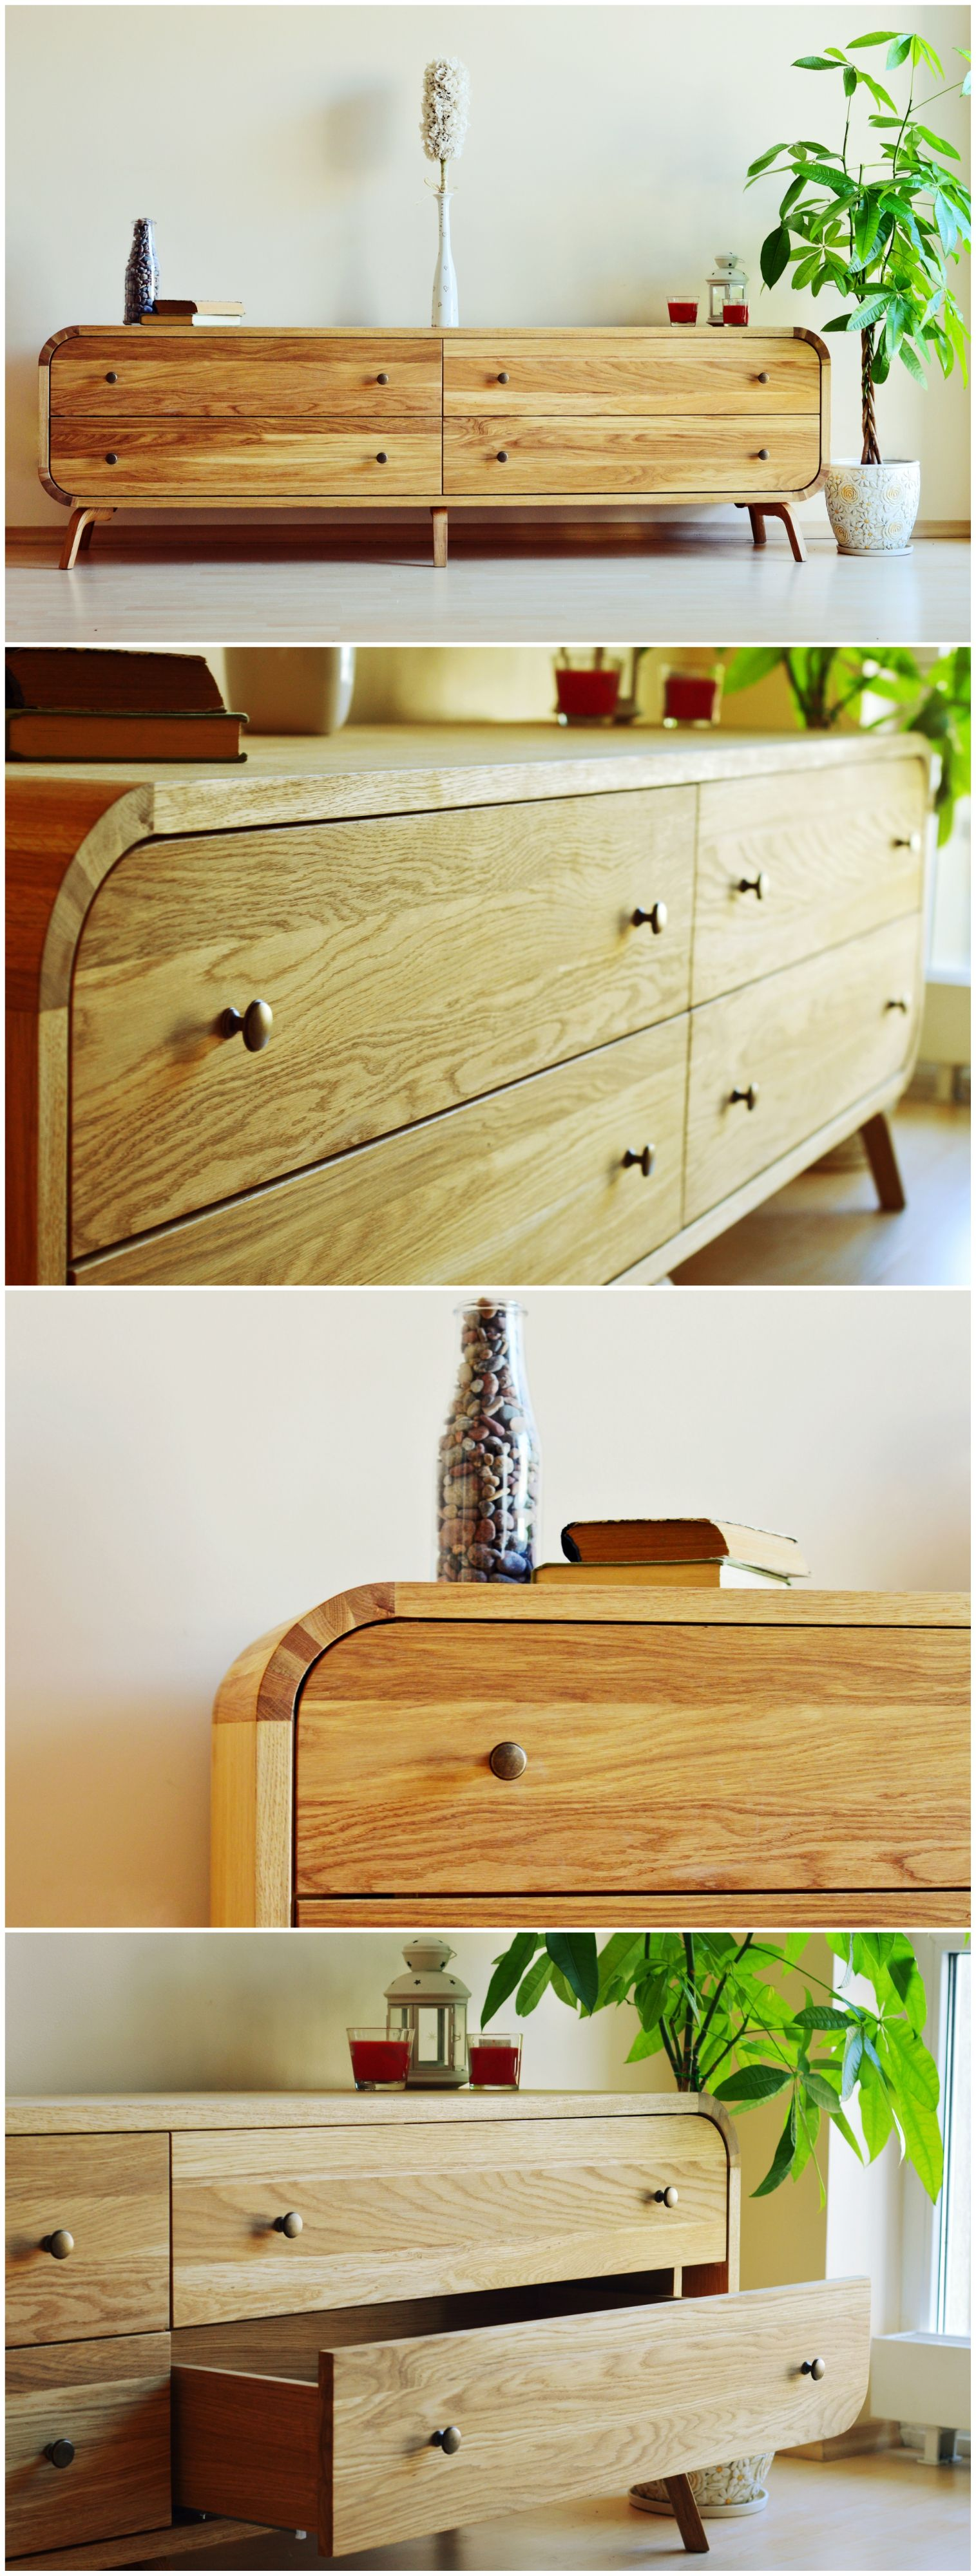 Chest Of Drawers Dresser Luxury Furniture Cabinet Low Cabinet TV Console  Midcentury Living Room Oak Solid